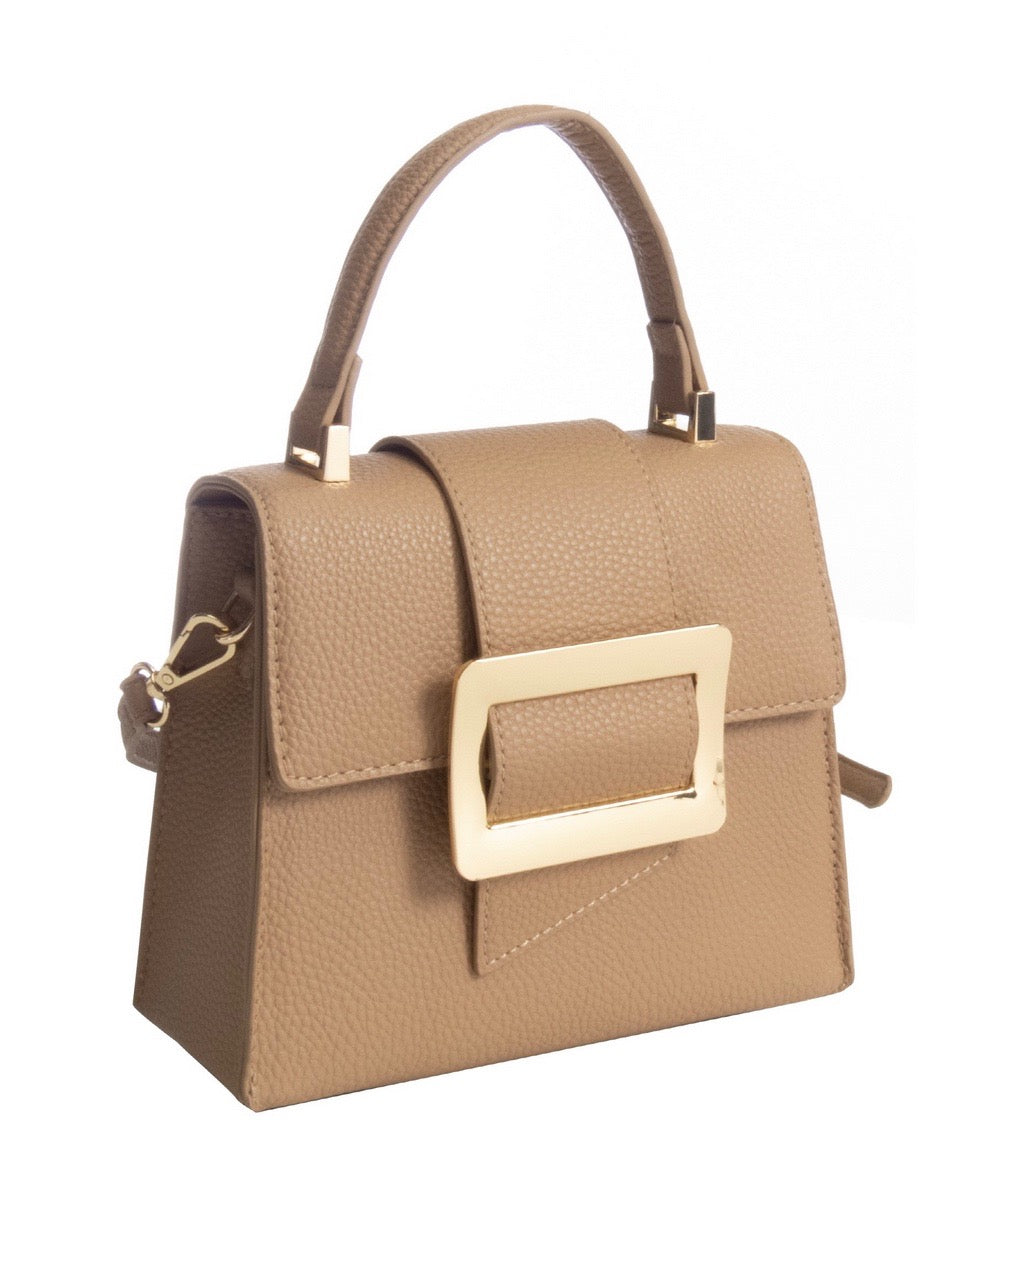 Want It Formal Missy Mini Cross Body Purse in Beige